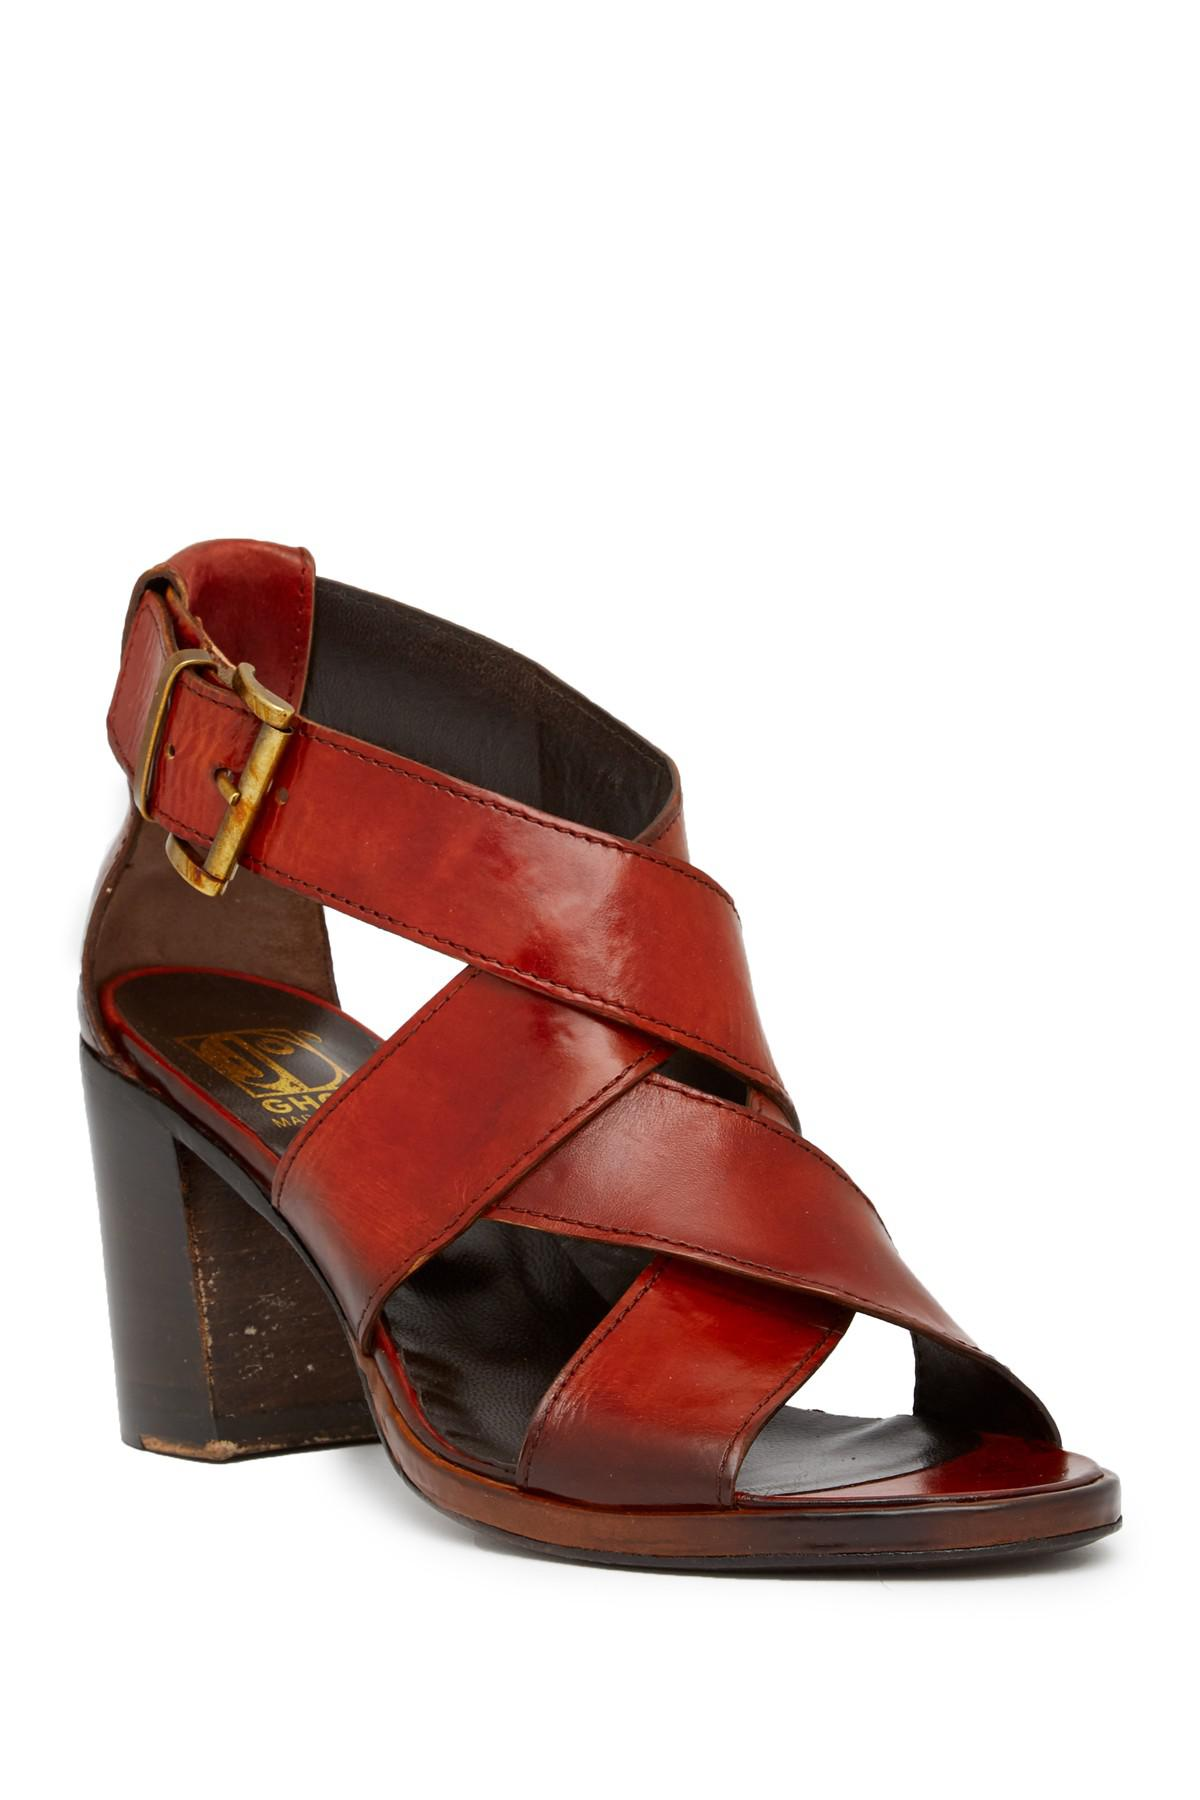 Lyst - Jo Ghost Crisscross Mid Heel Sandal in Red